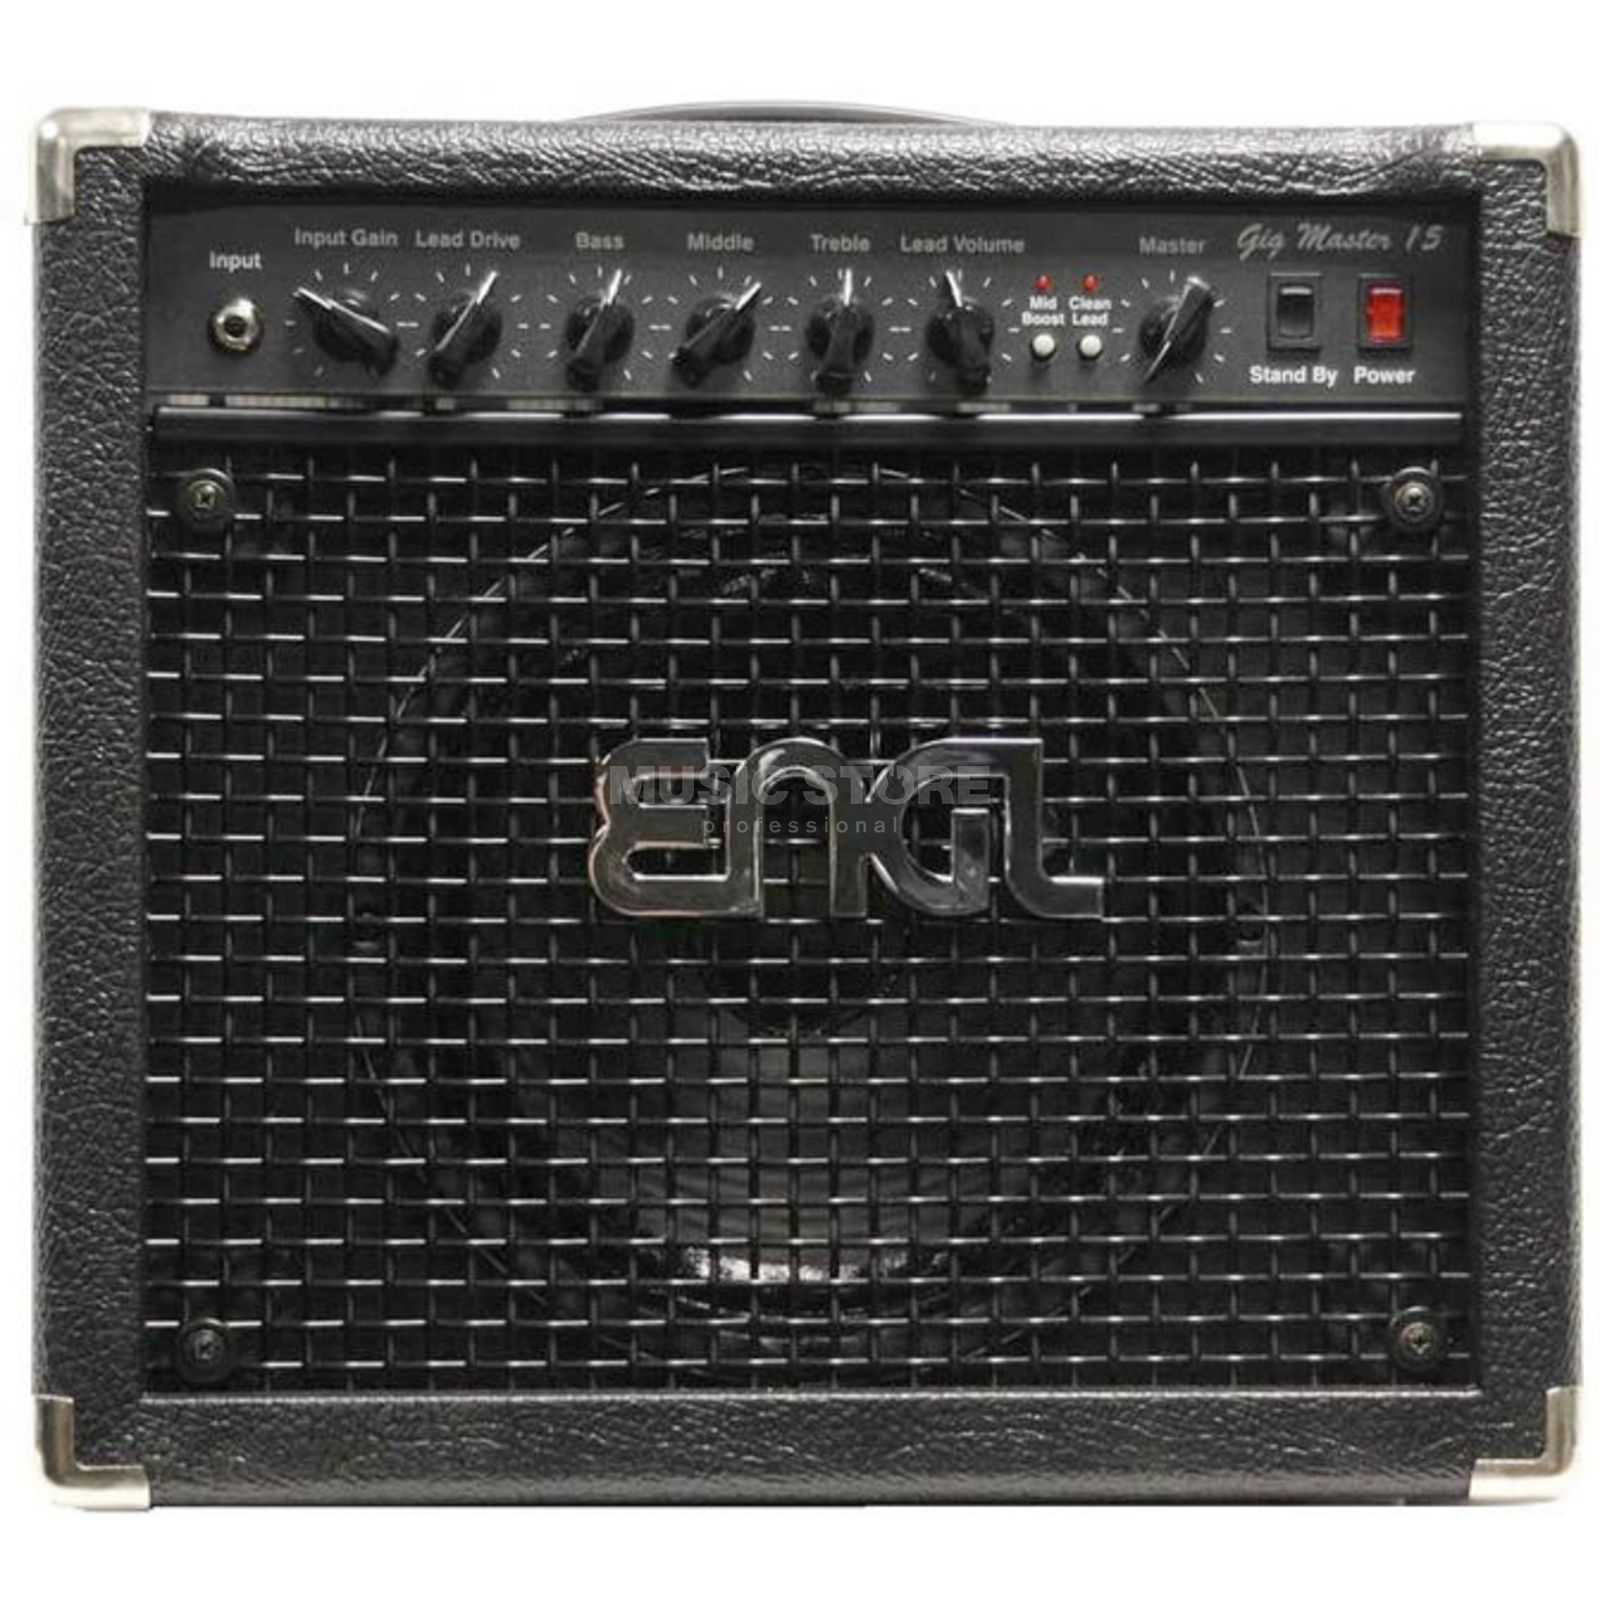 Engl Gigmaster 15 Combo Guitar Ampl ifier Combo   Produktbillede